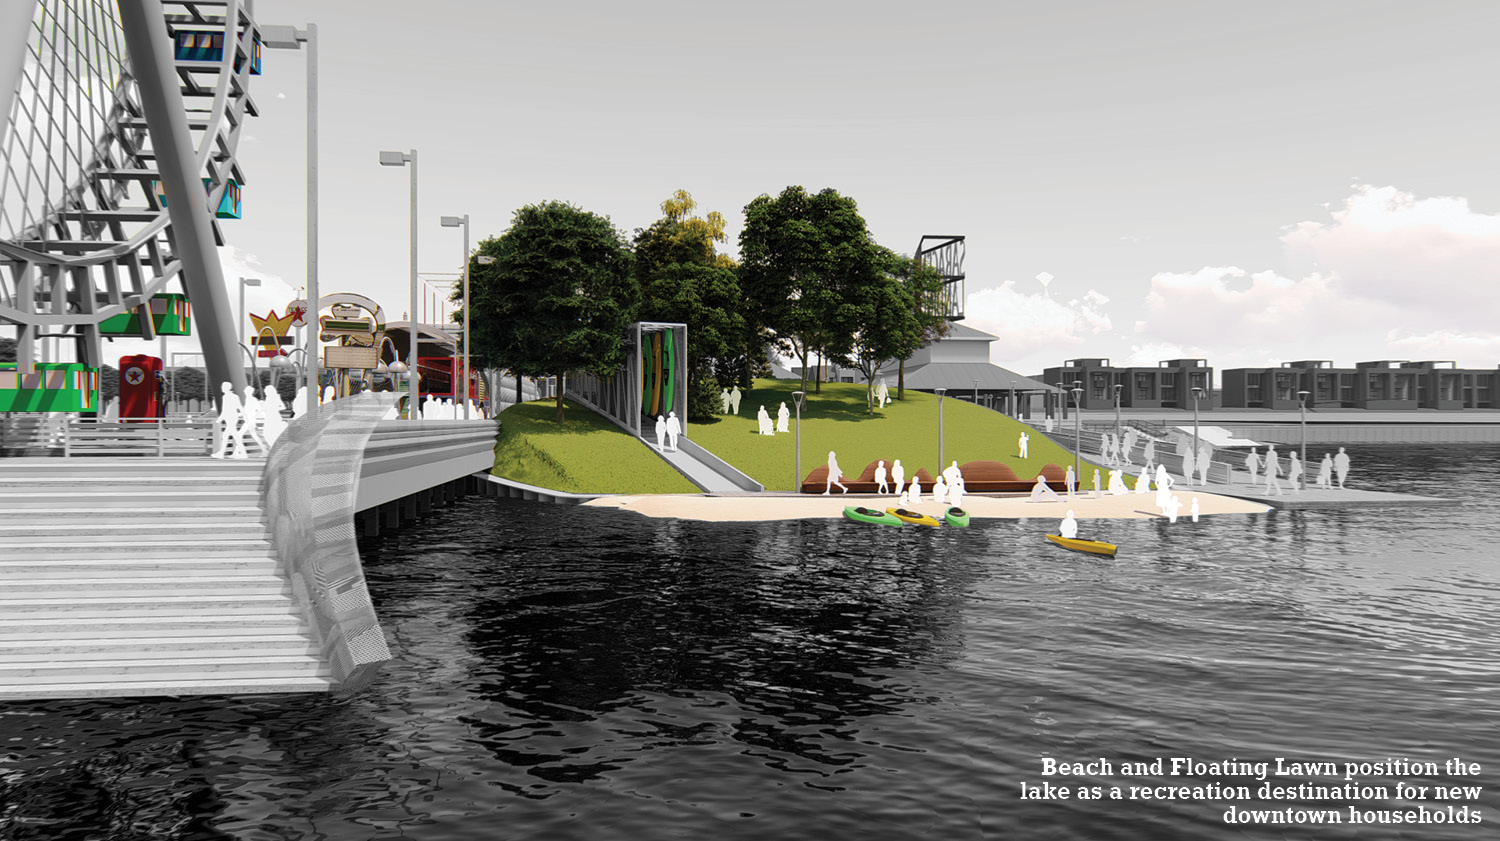 Beach and Floating Lawn position the lake as a recreation destination for new downtown households University of Arkansas Community Design Center